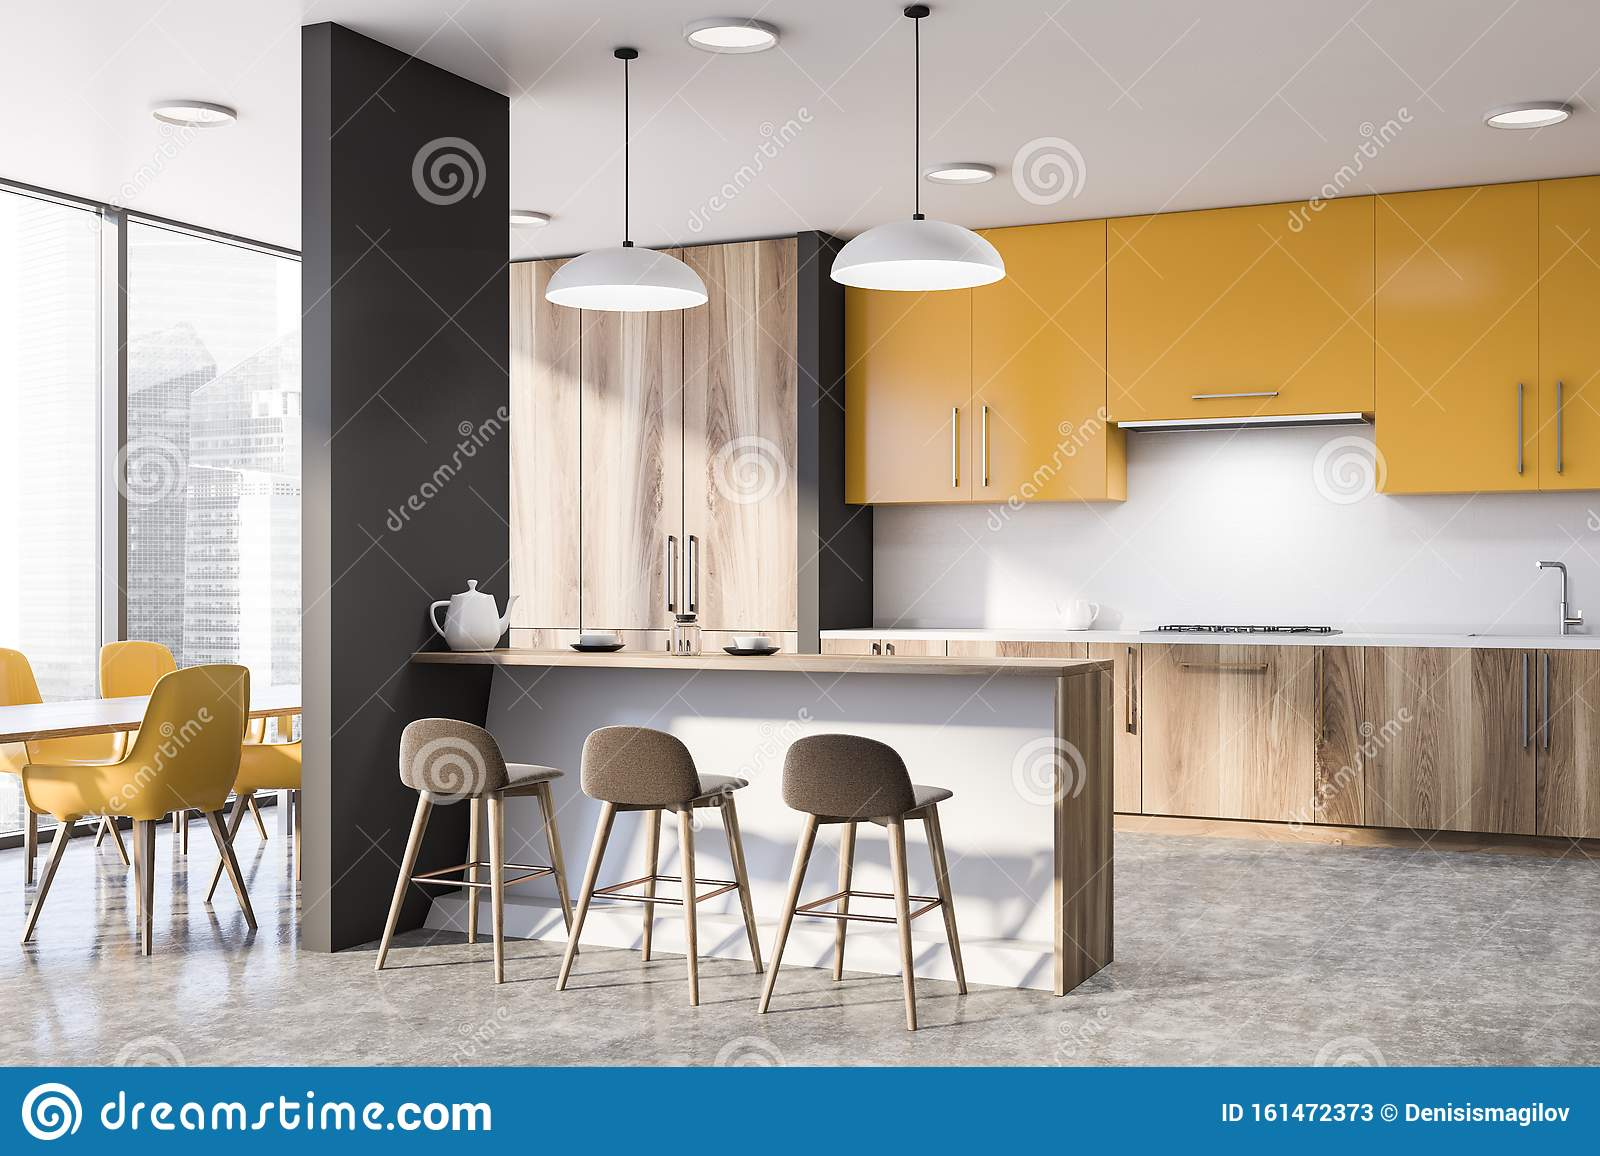 Yellow Kitchen Corner With Bar And Table Stock Illustration ...